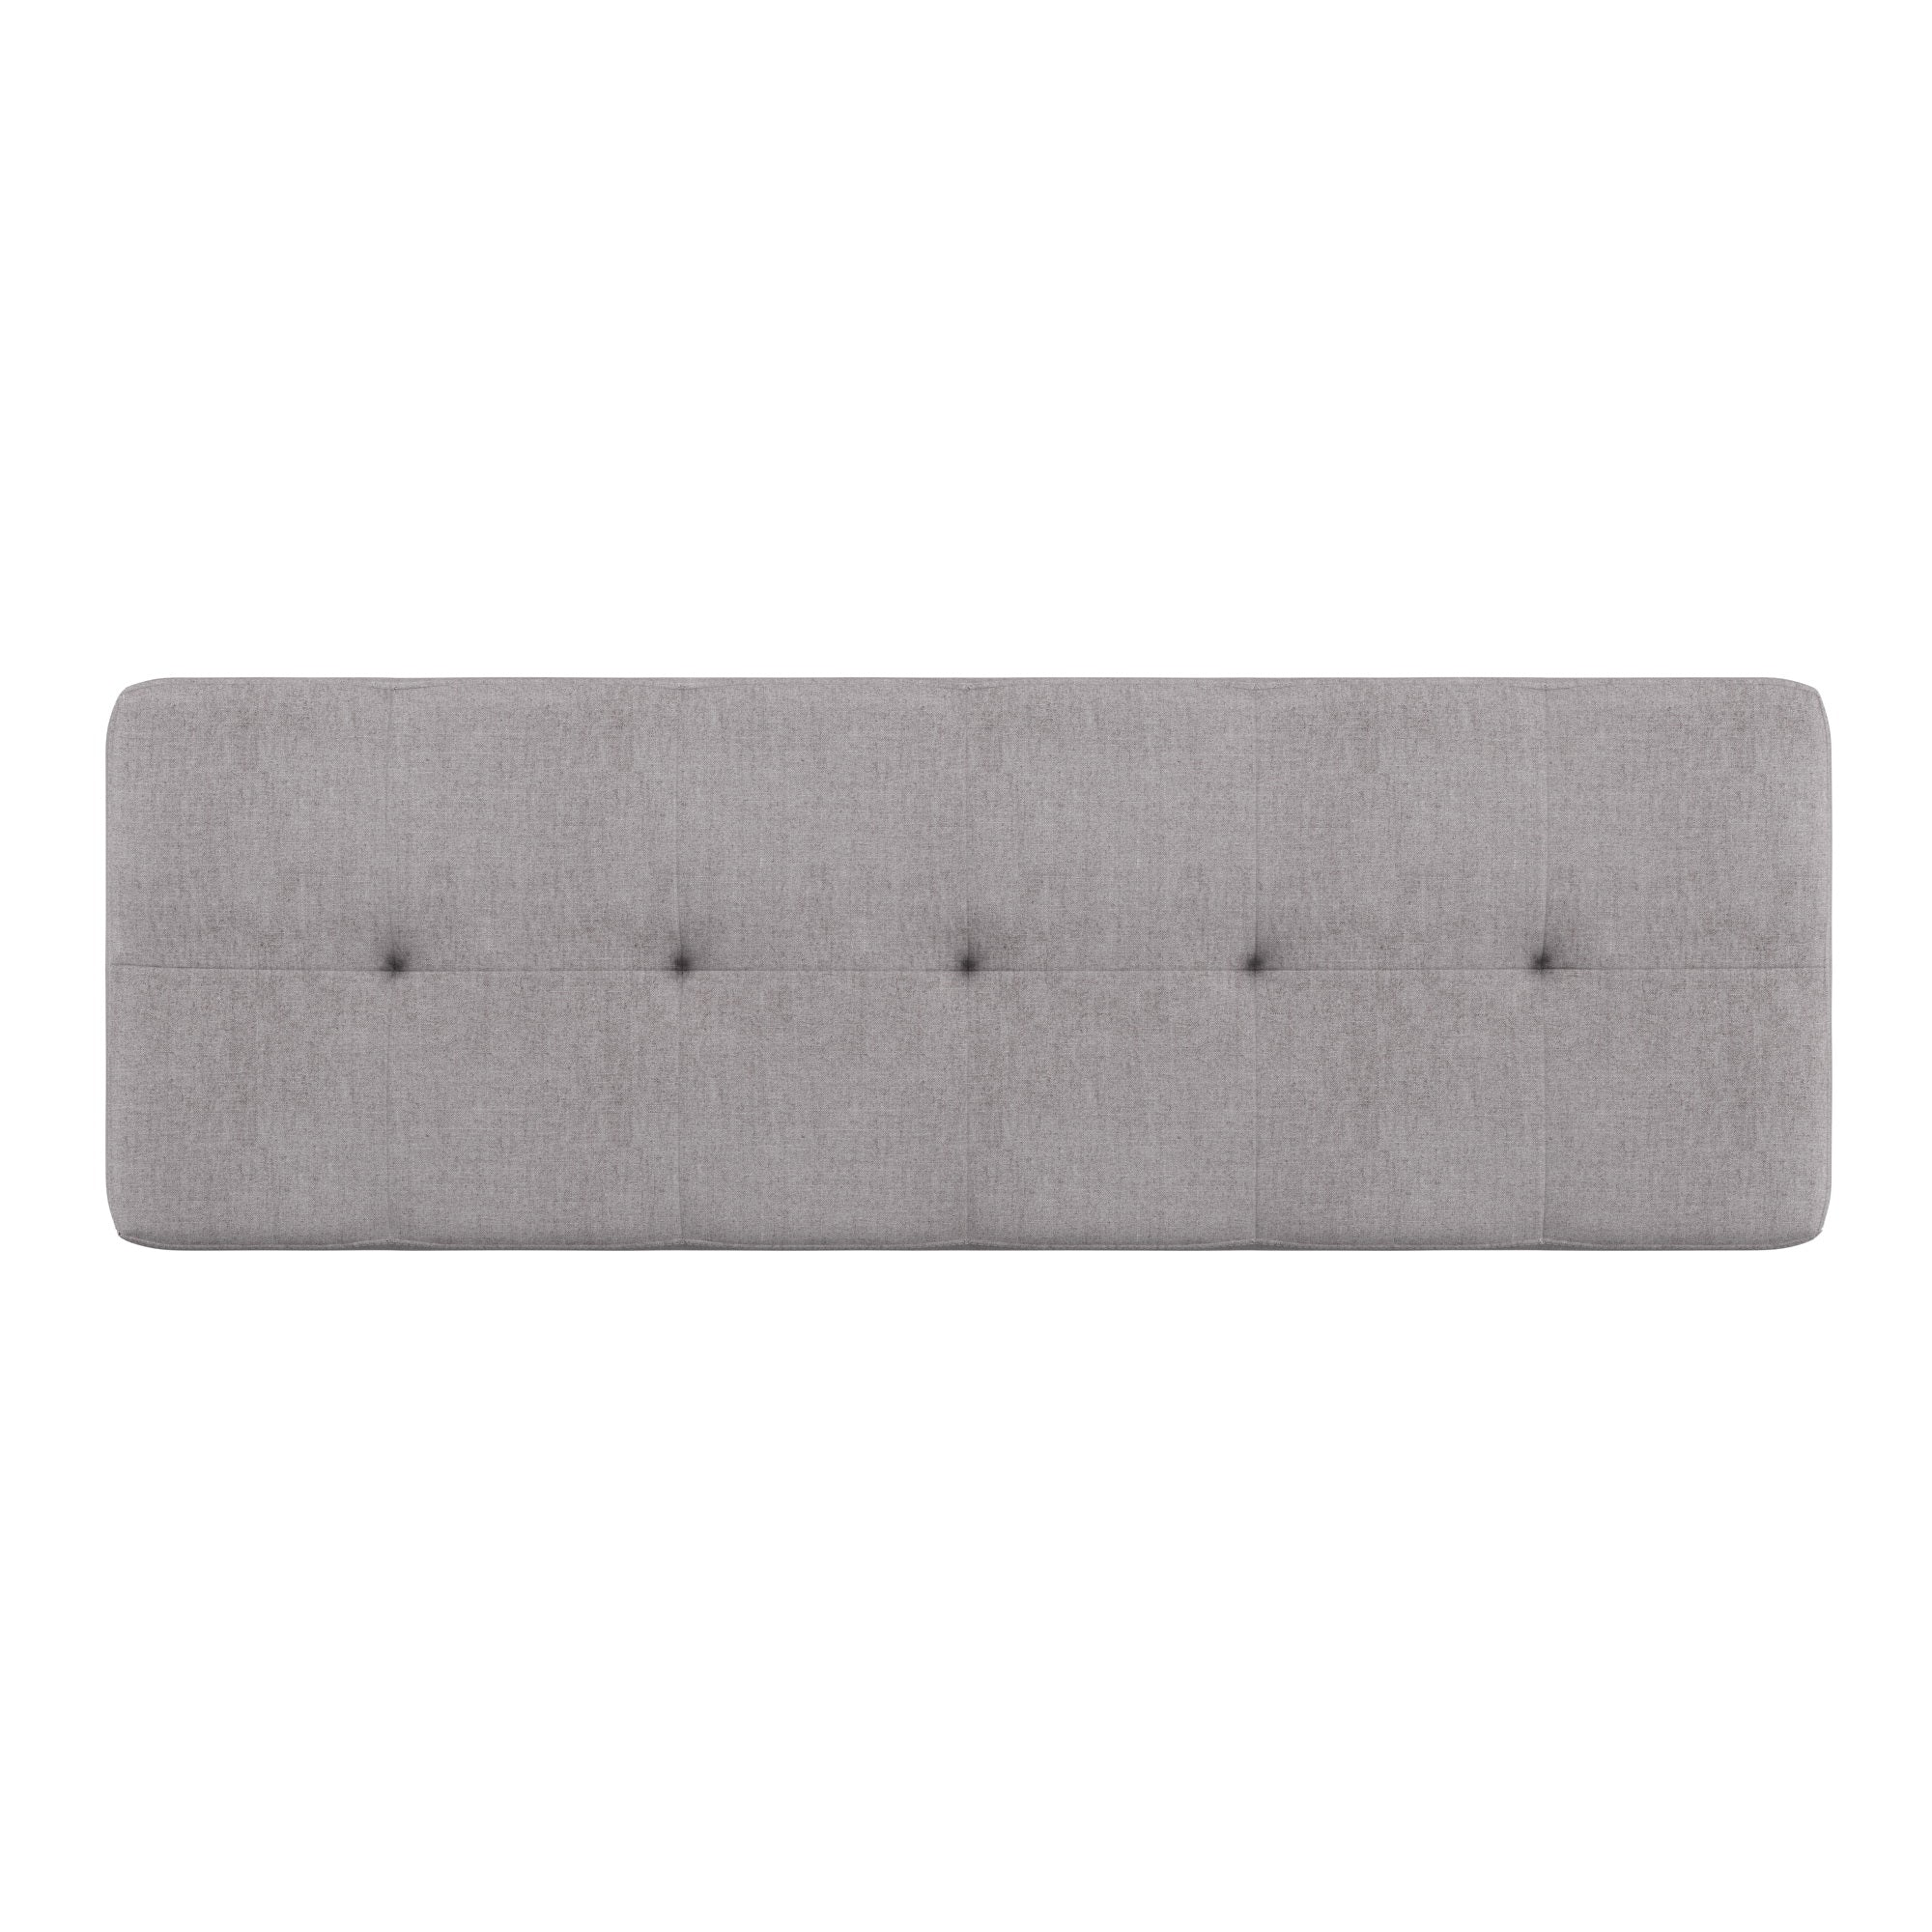 Oak Angled Leg Linen Dining Bench - Grey